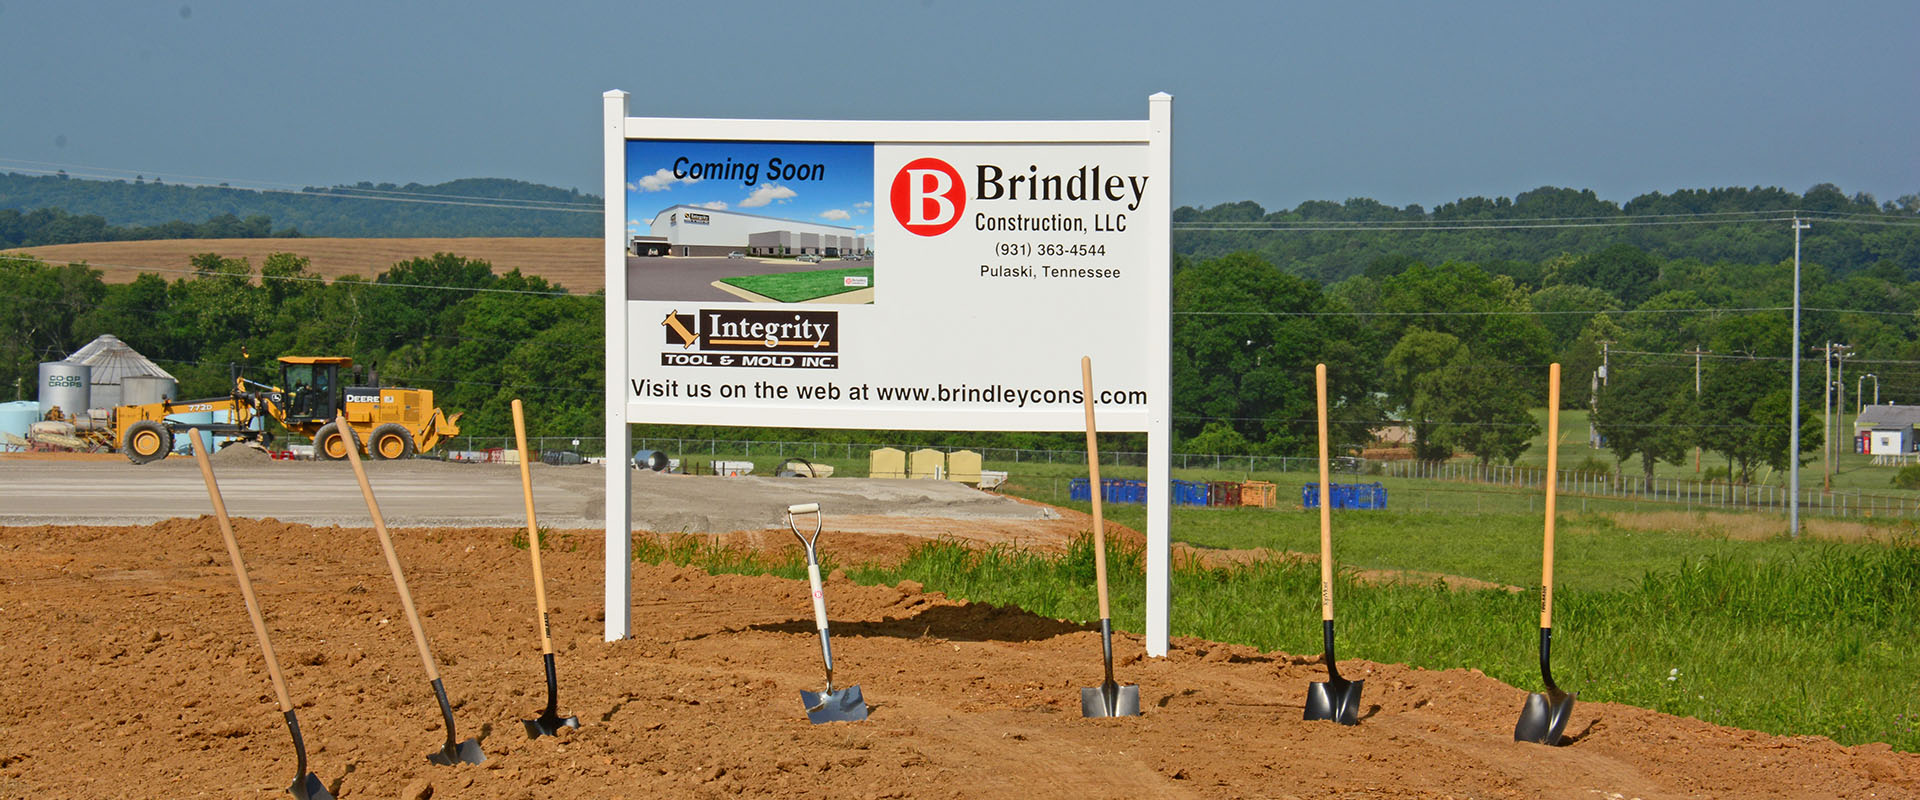 General Contracting Services   Brindley Construction